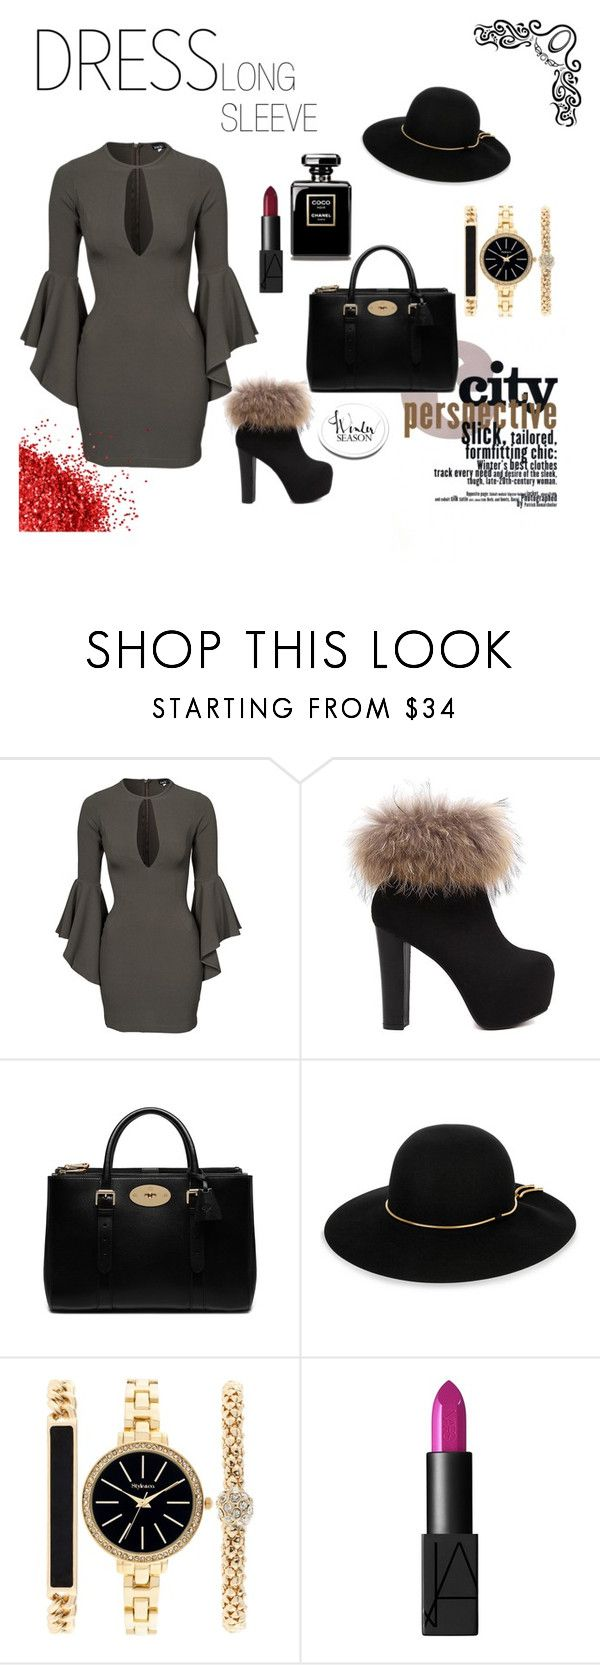 """""""Bell-Sleeve Dresses"""" by azraa-tursunovic ❤ liked on Polyvore featuring John Zack, Mulberry, Lanvin, Style & Co. and NARS Cosmetics"""